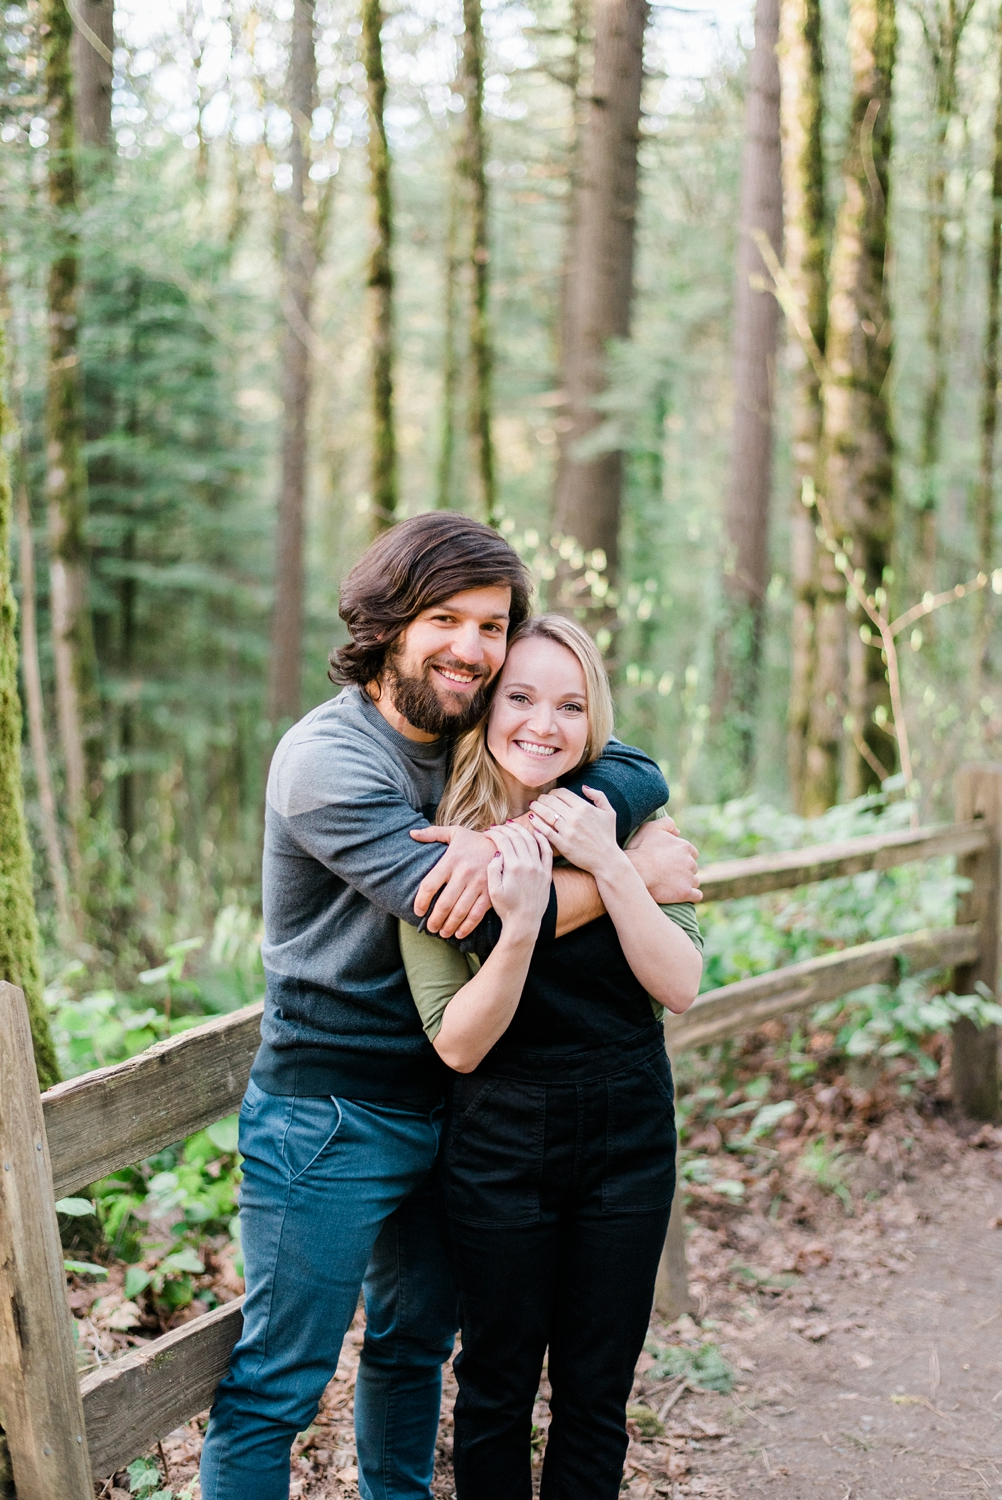 washington-park-portland-engagement-photos-hoyt-arboretum-shelley-marie-photo-141_cr.jpg